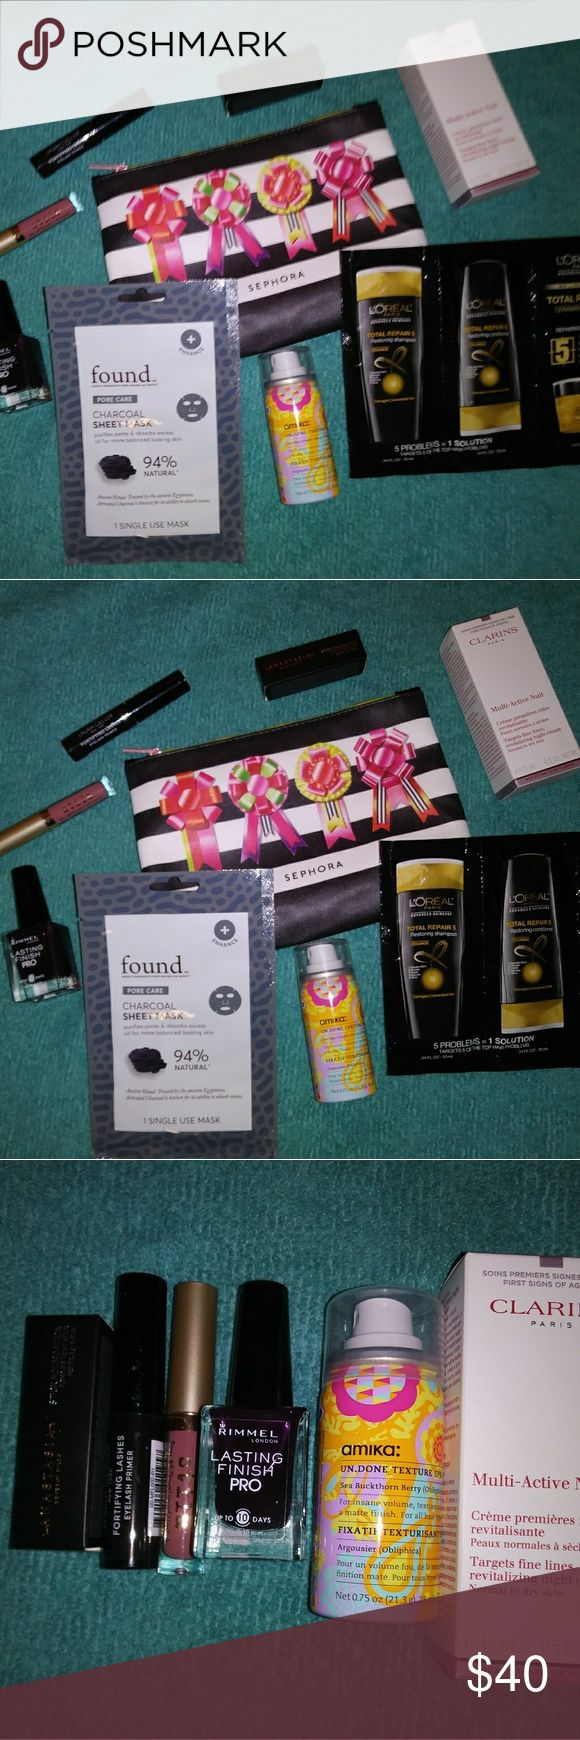 High end makeup bundle Clarins multi-active nuit amika hair mask Rimmel purple rain nail polish Stila lipgloss- patina Laura Geller eyelash primer Anastasia stick foundation or bronzer- mink Loreal shampoo, conditioner & mask sample Found charcoal sheet mask sample Sephoria christmas bag   All brand new never used or swatched. Sephora Makeup